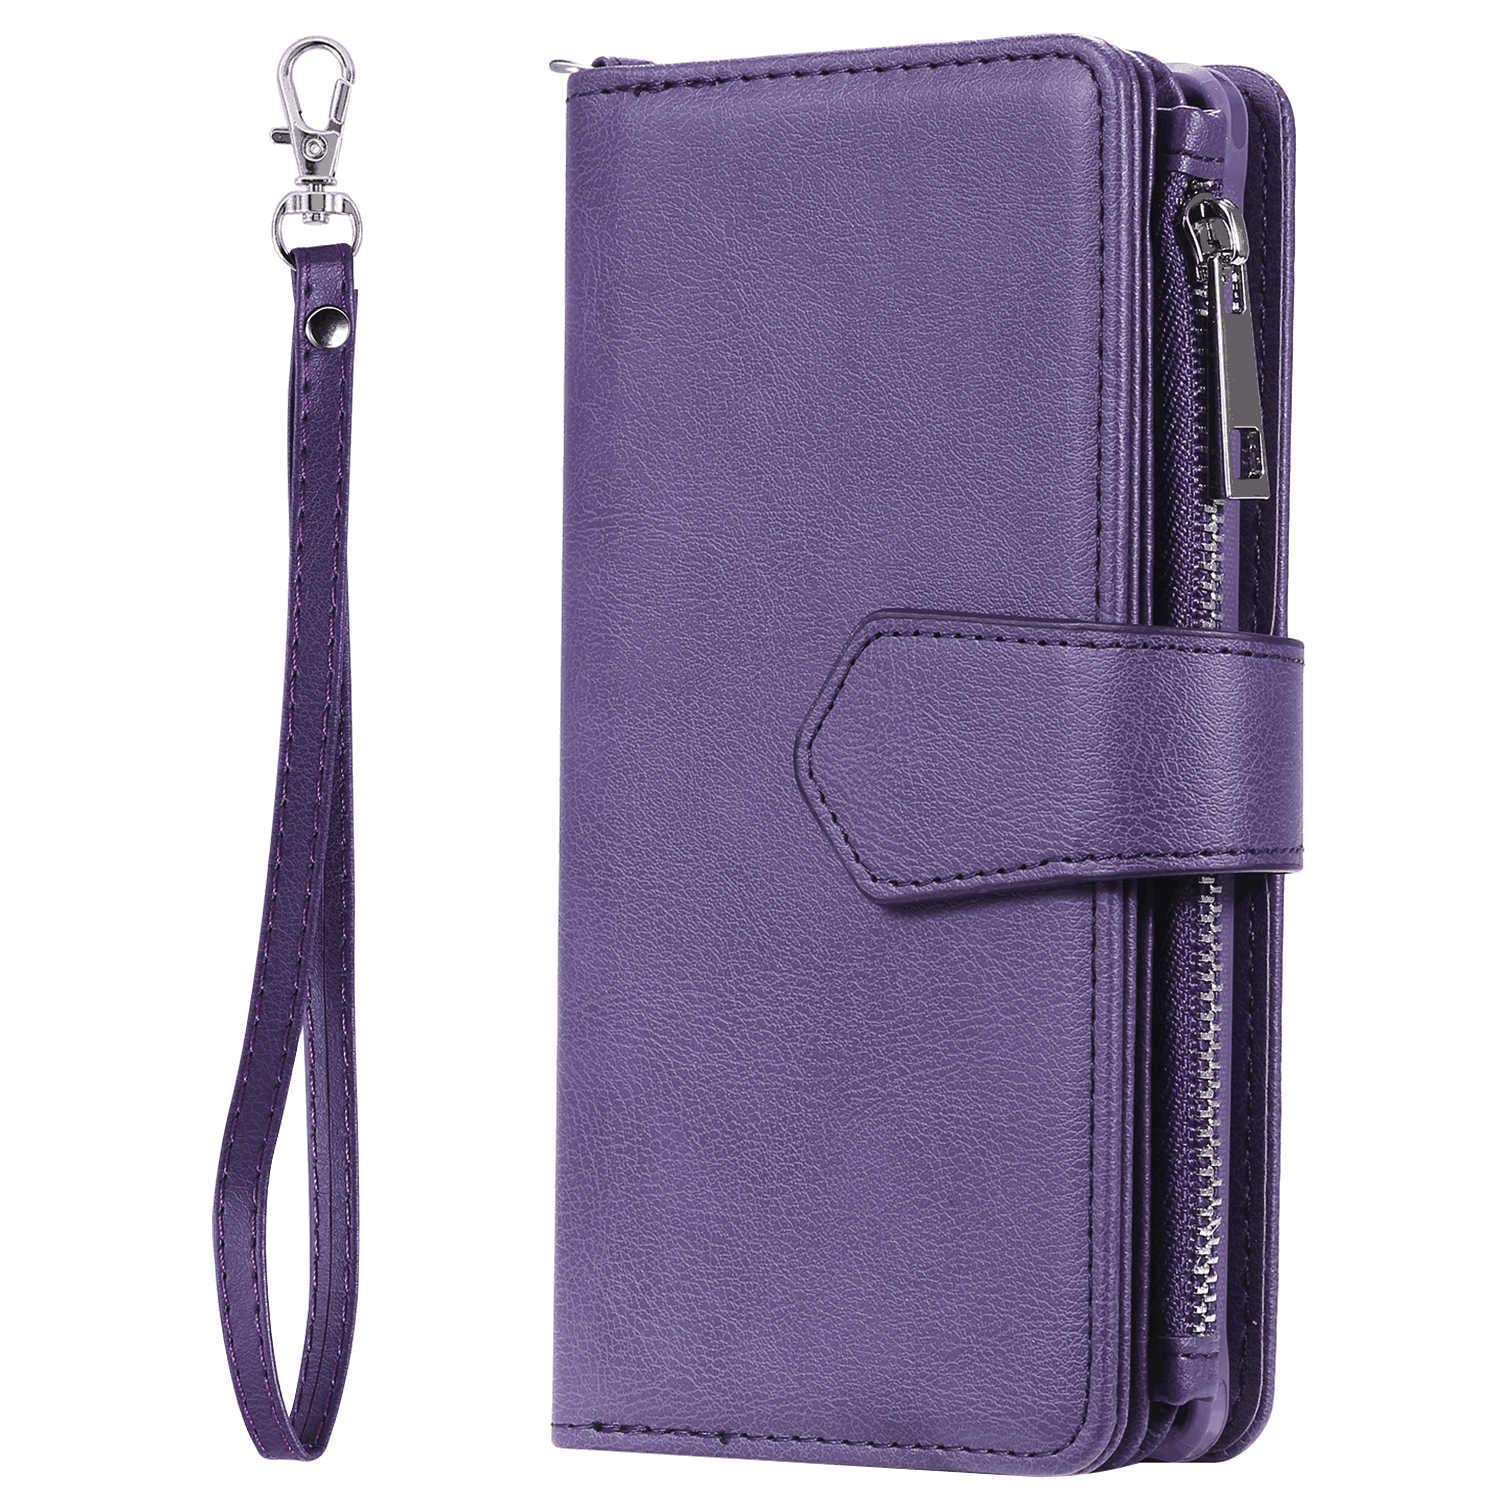 with Waterproof Case for Cellphone Leather Case Compatible with Samsung Galaxy S9 Flip Cover for Samsung Galaxy S9